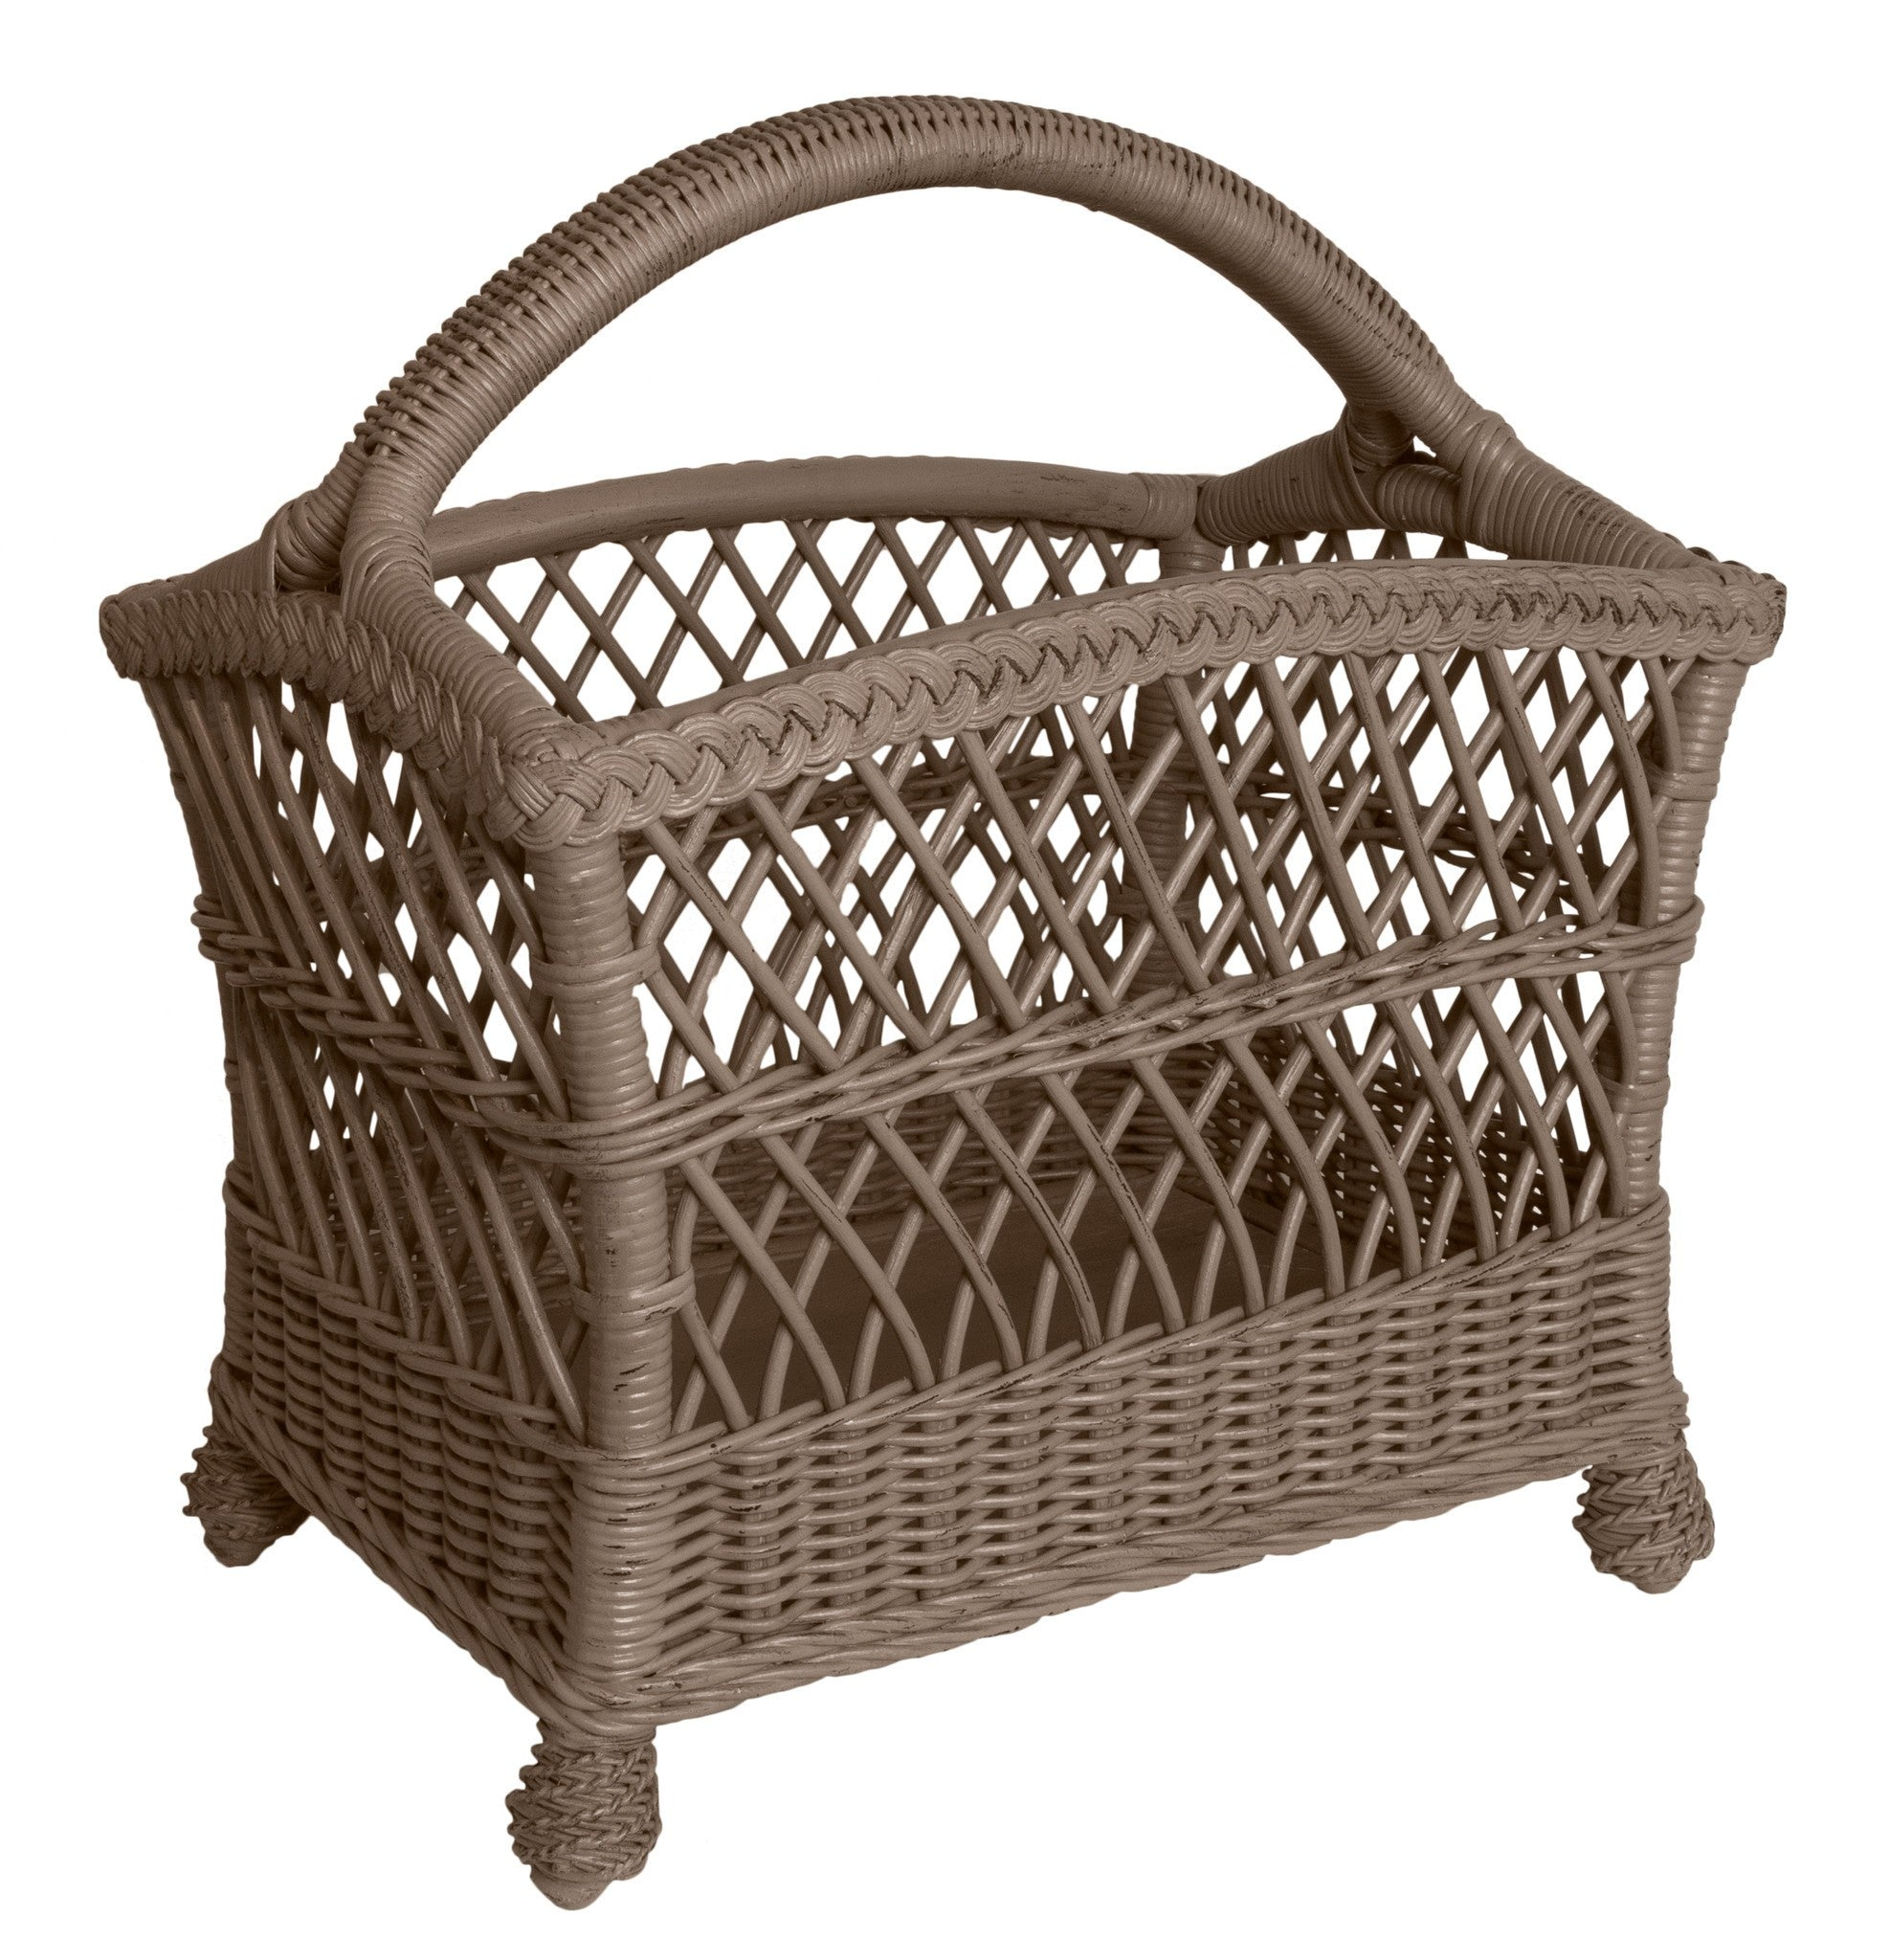 Designer Wicker & Rattan By Tribor Rockport Magazine Rack by Designer Wicker & Rattan By Tribor Accessory - Rattan Imports